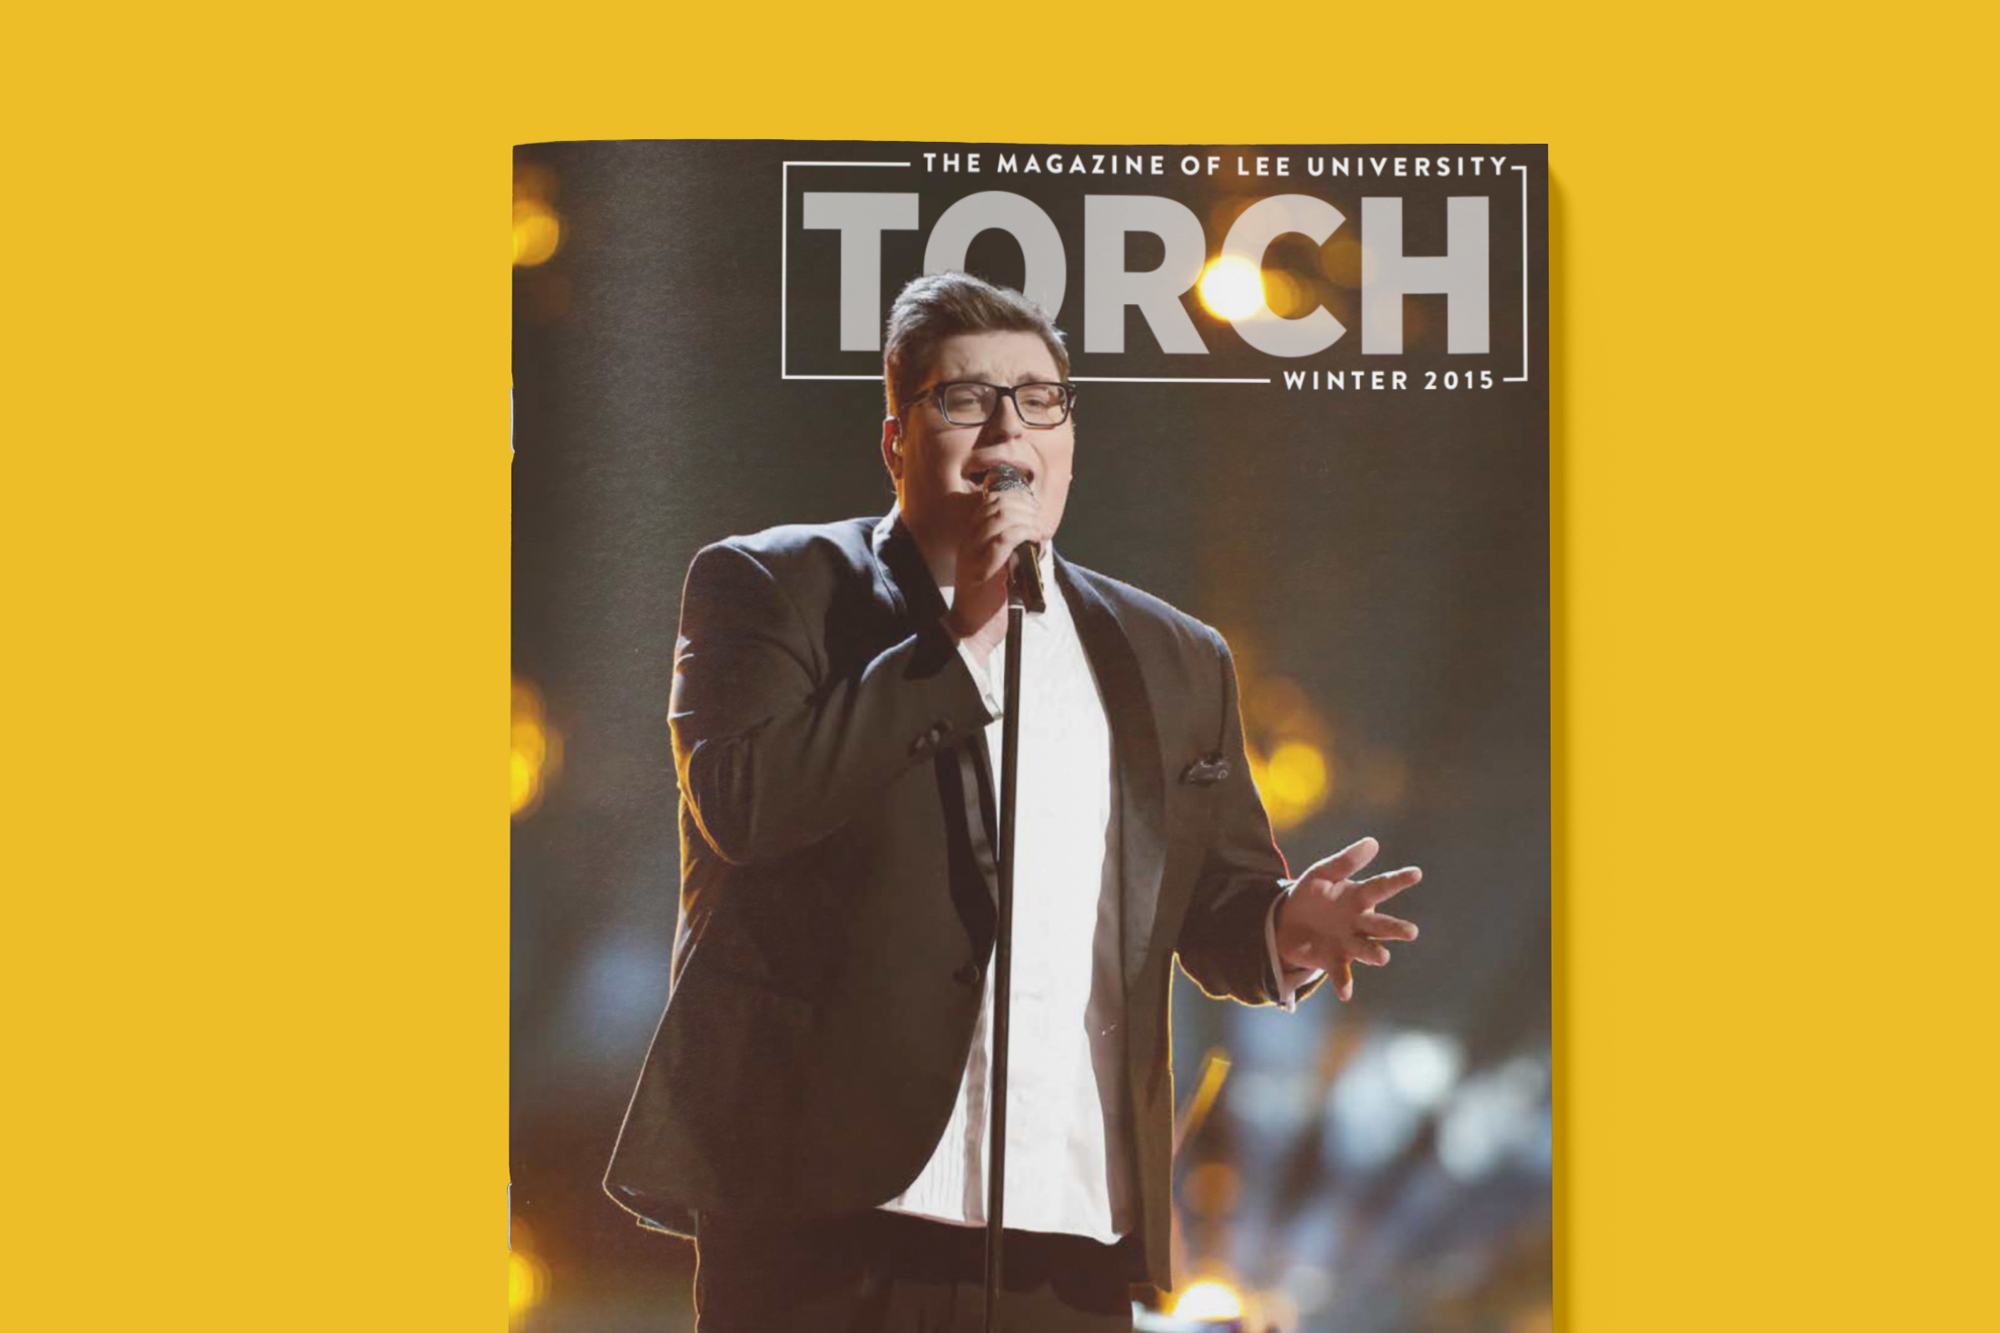 Torch-spreads_7.jpg